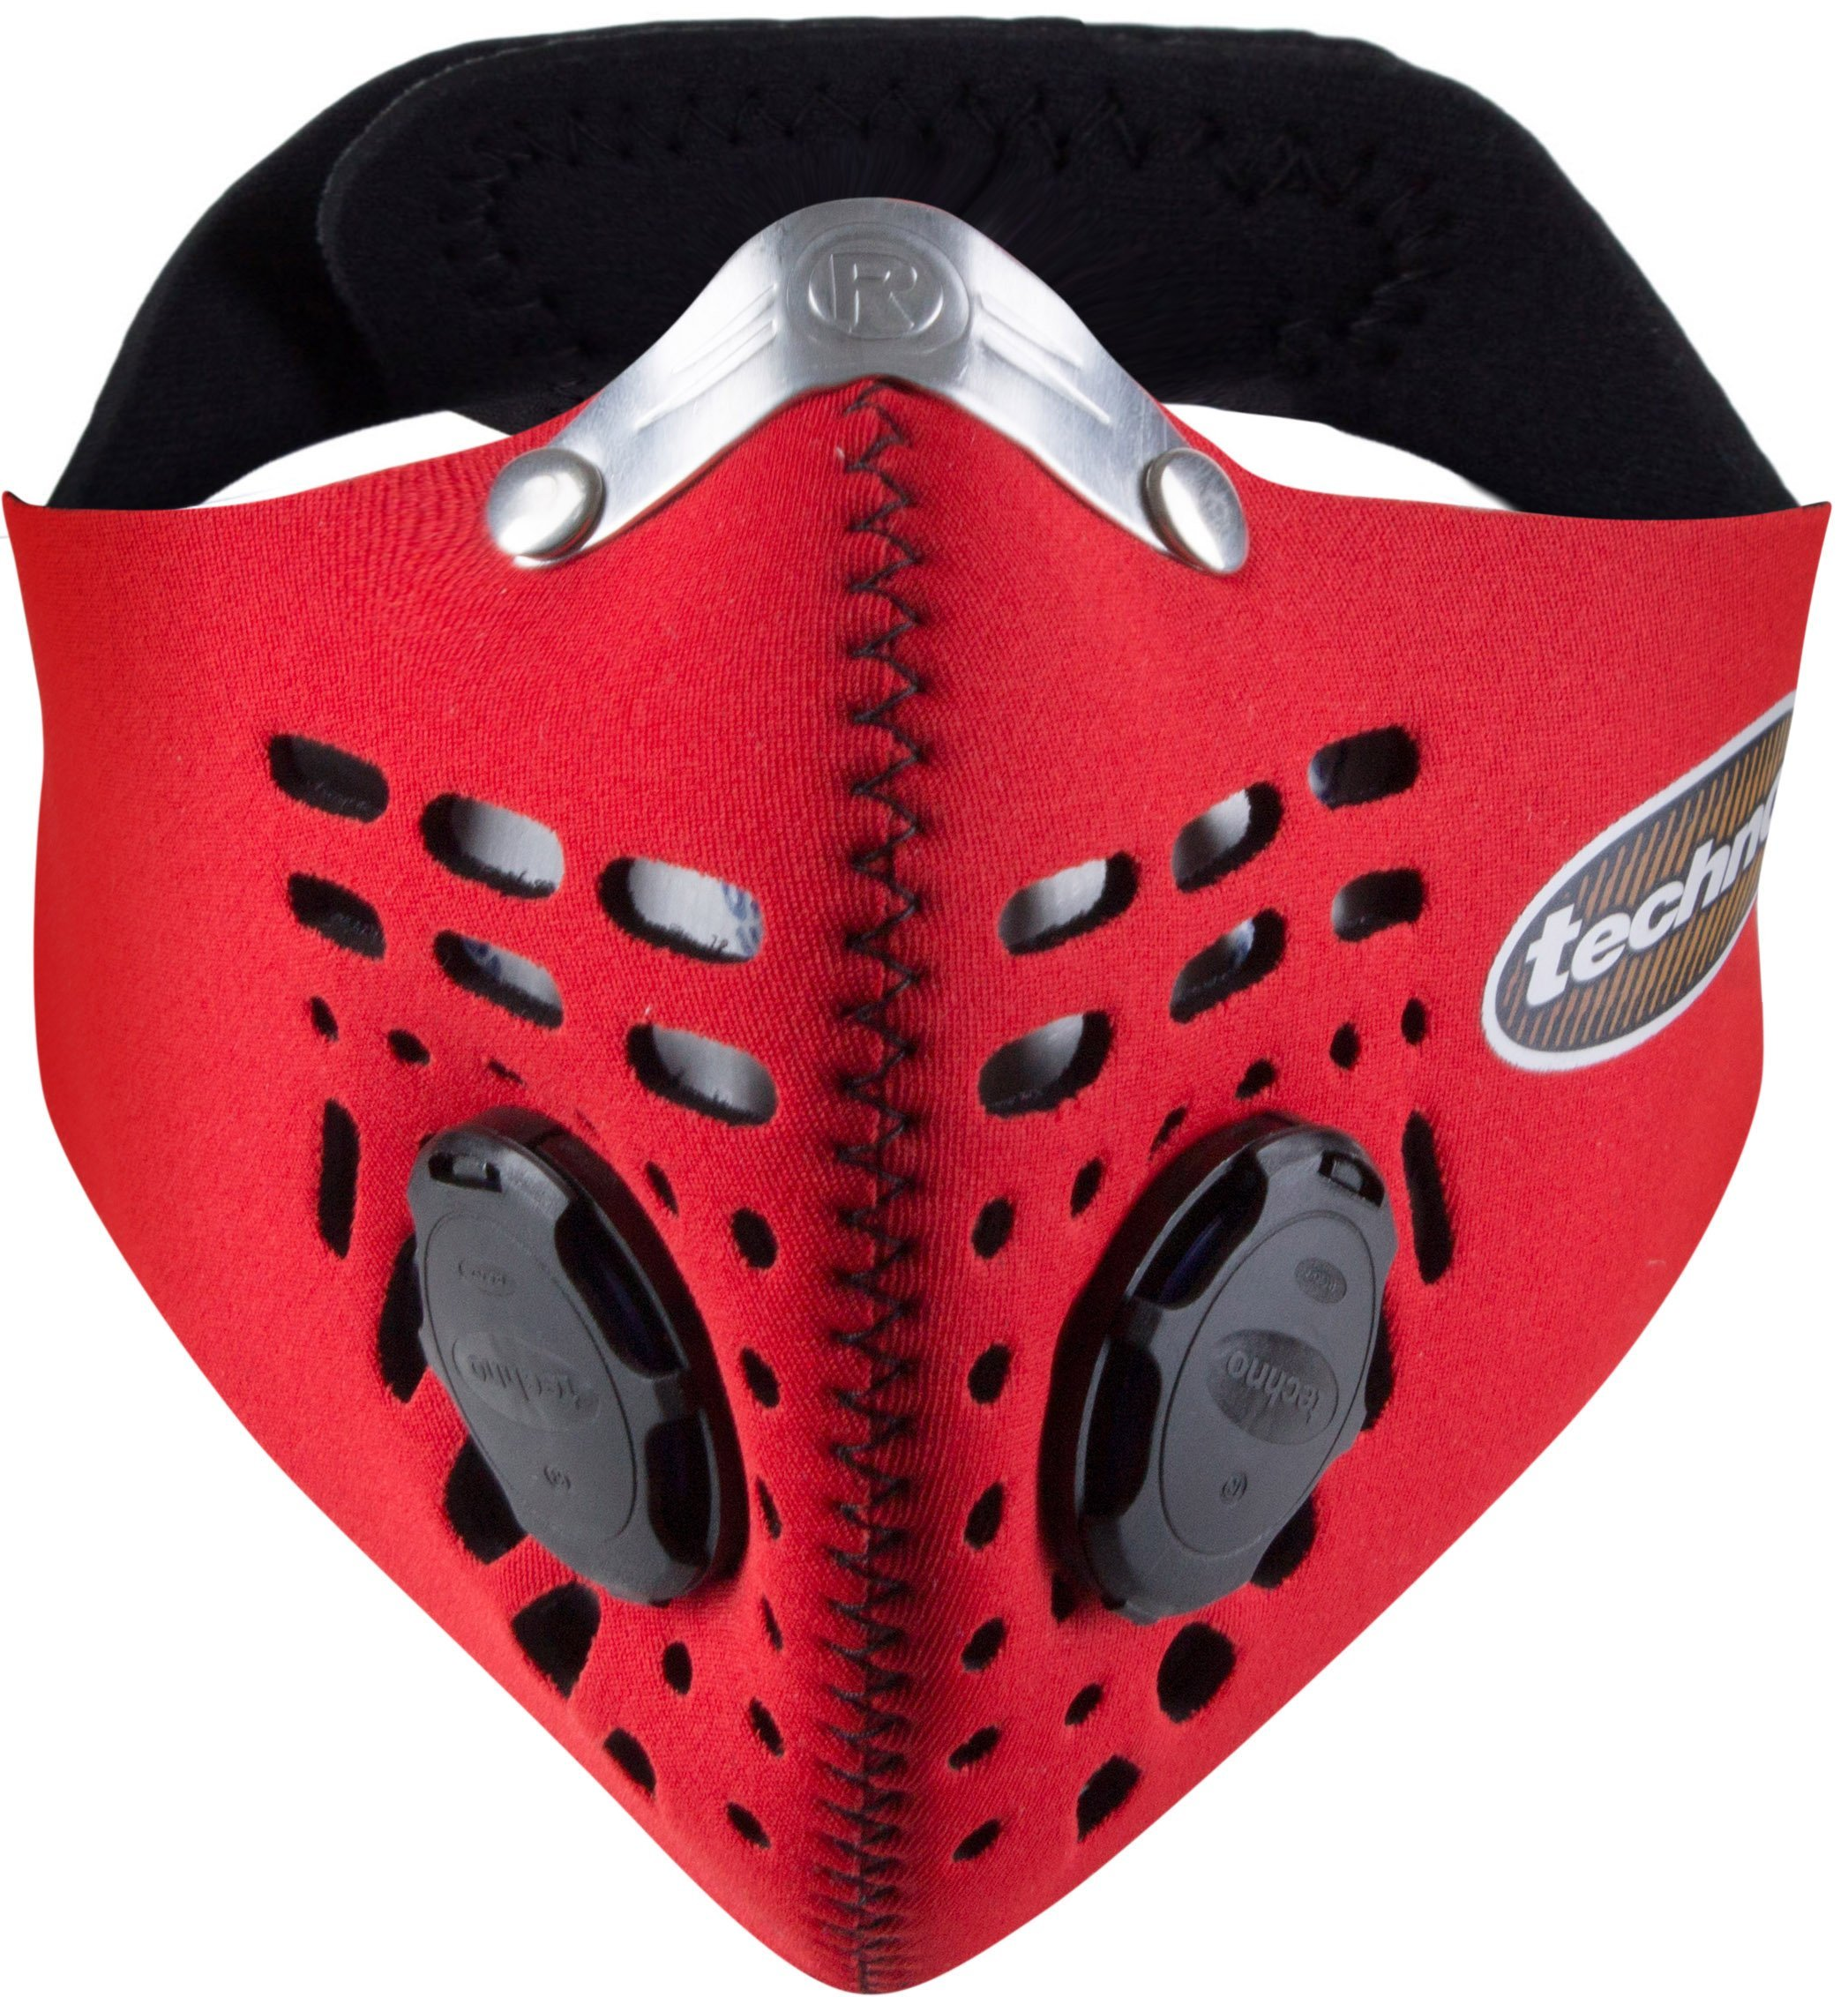 Respro Techno Anti-Pollution Mask - Medium - red by Respro (Image #1)